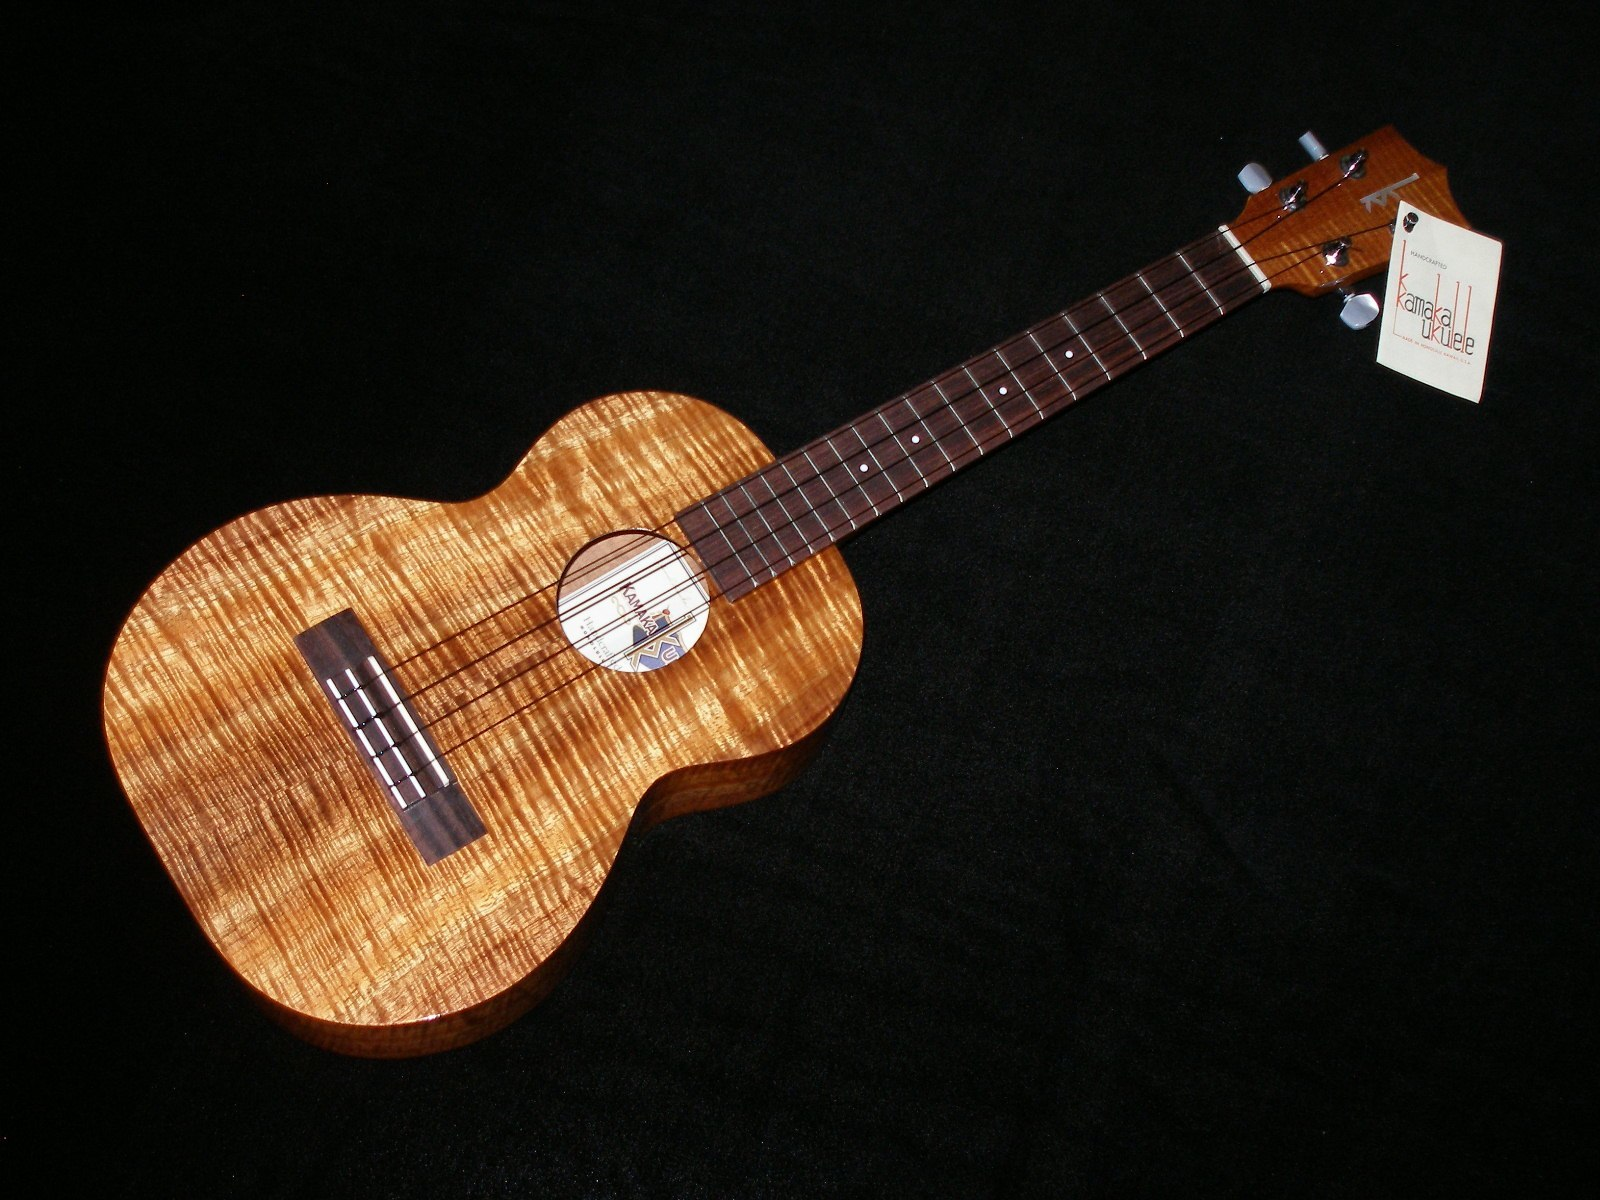 Ukulele Friend Custom Kamaka Tenor Ukulele - Ukulele Friend